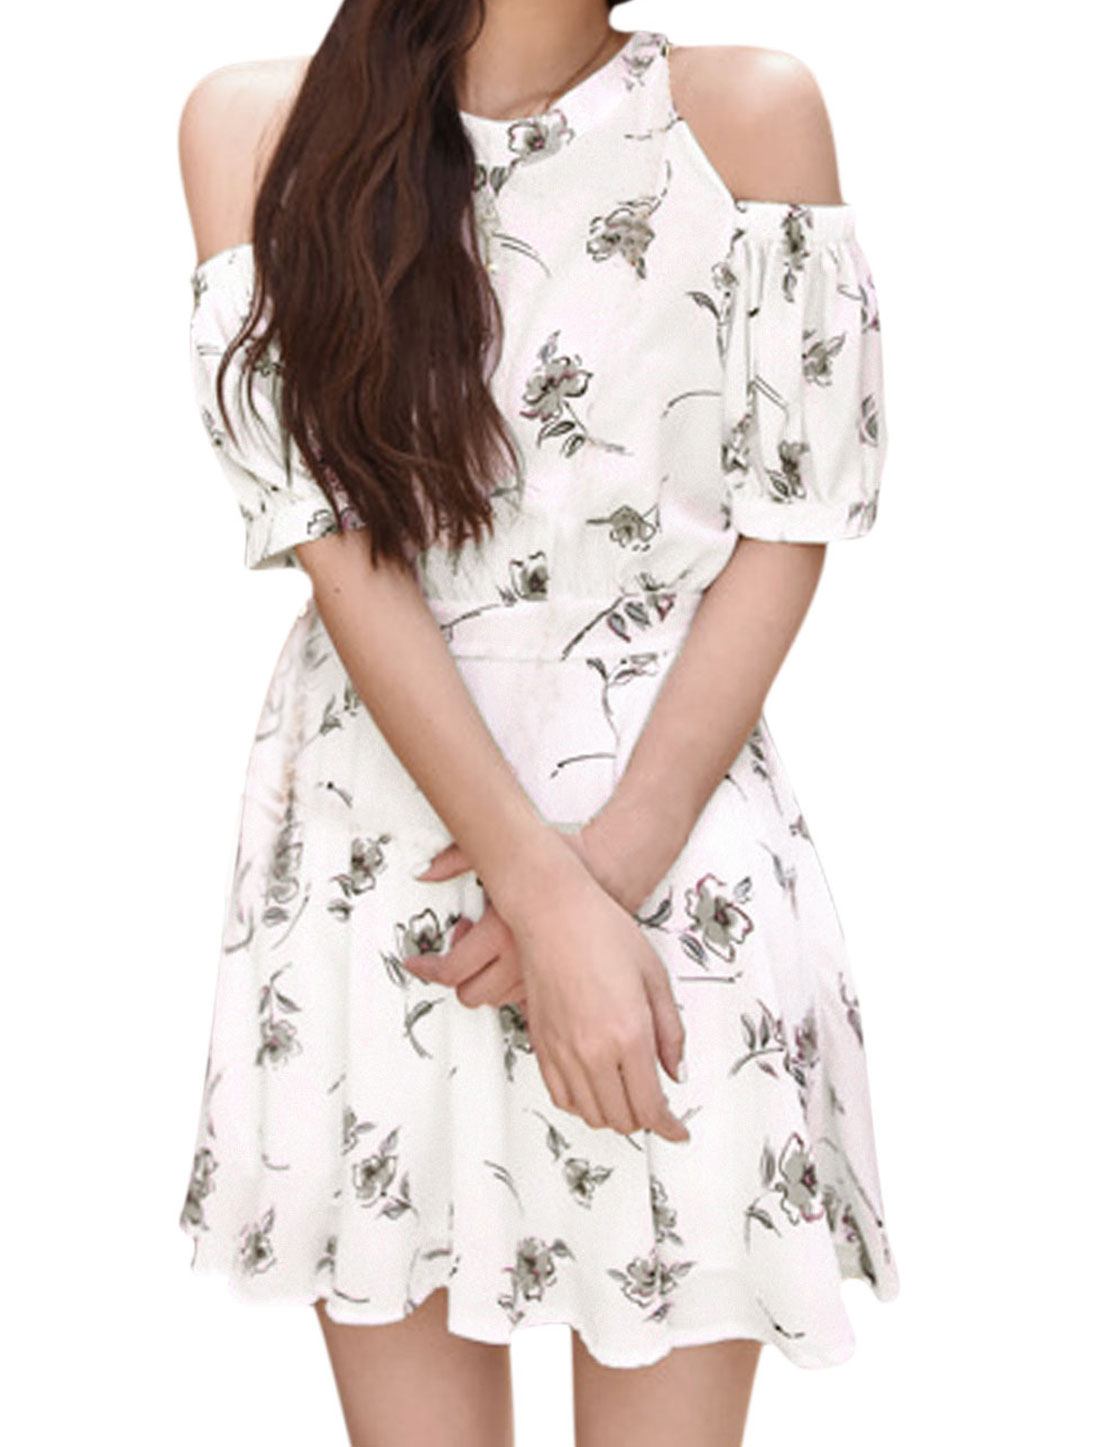 Women Cold Shoulder Floral Prints Halter Neck Dress White XS